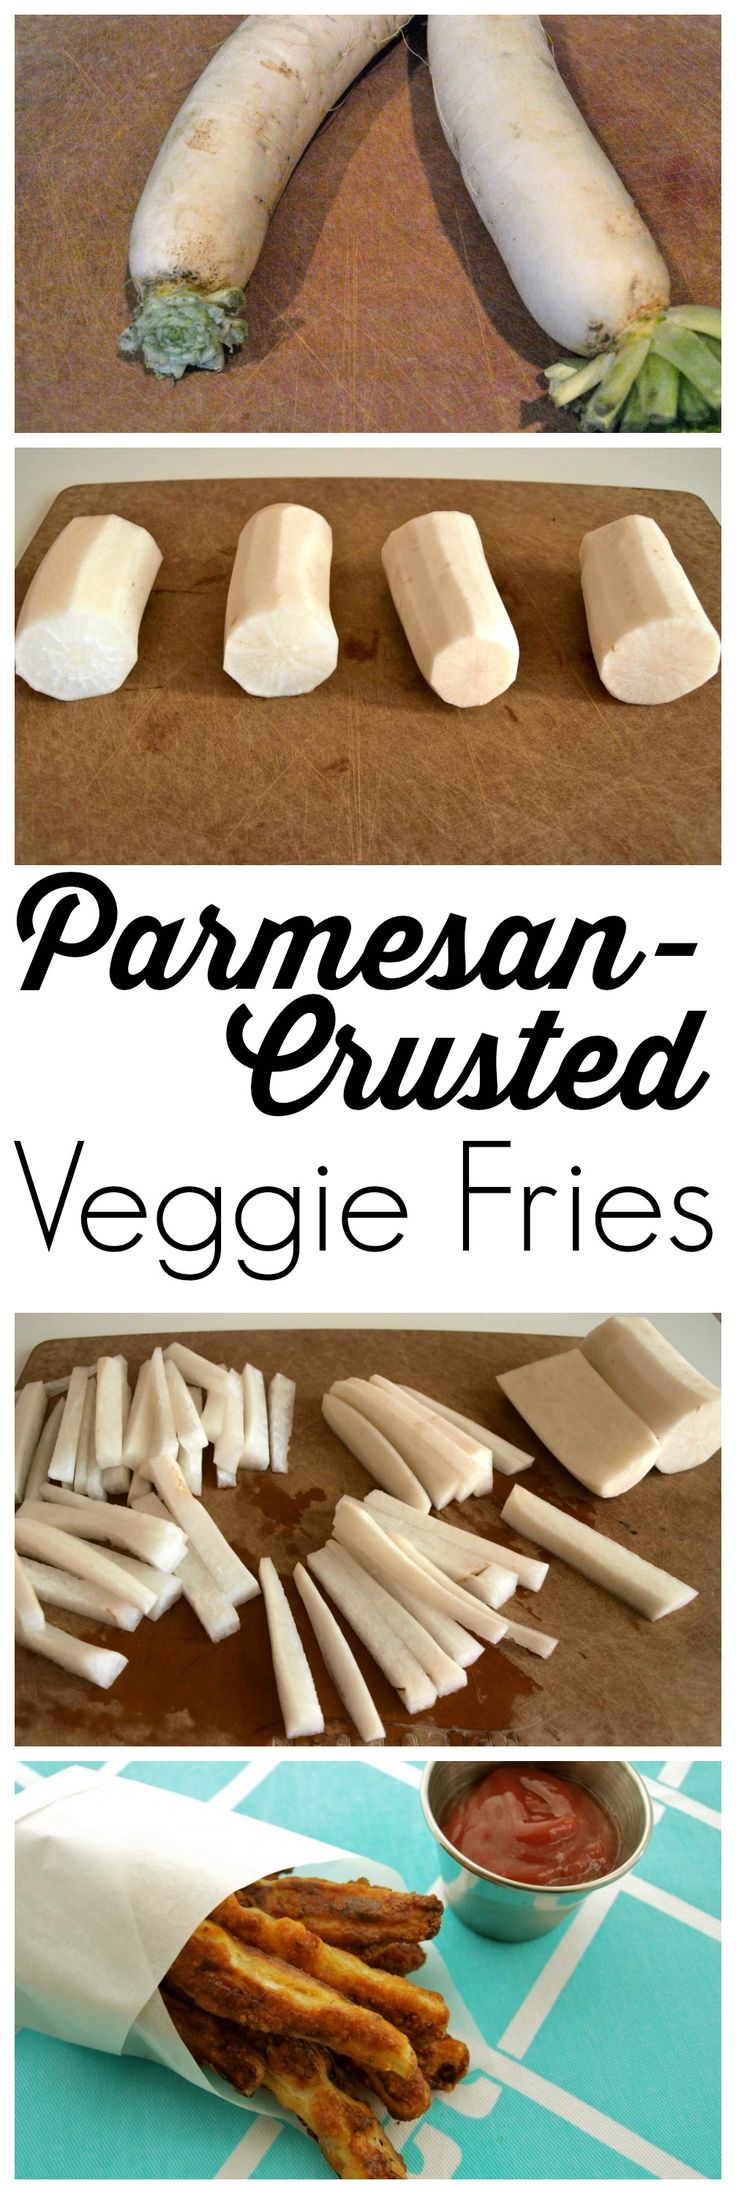 These parmesan-crusted Veggie Fries are PERFECT for the vegetable-hater in your life.  Who can say no to cheese-crusted vegetables?! This is an outstanding recipe that can be used with a variety of vegetables.